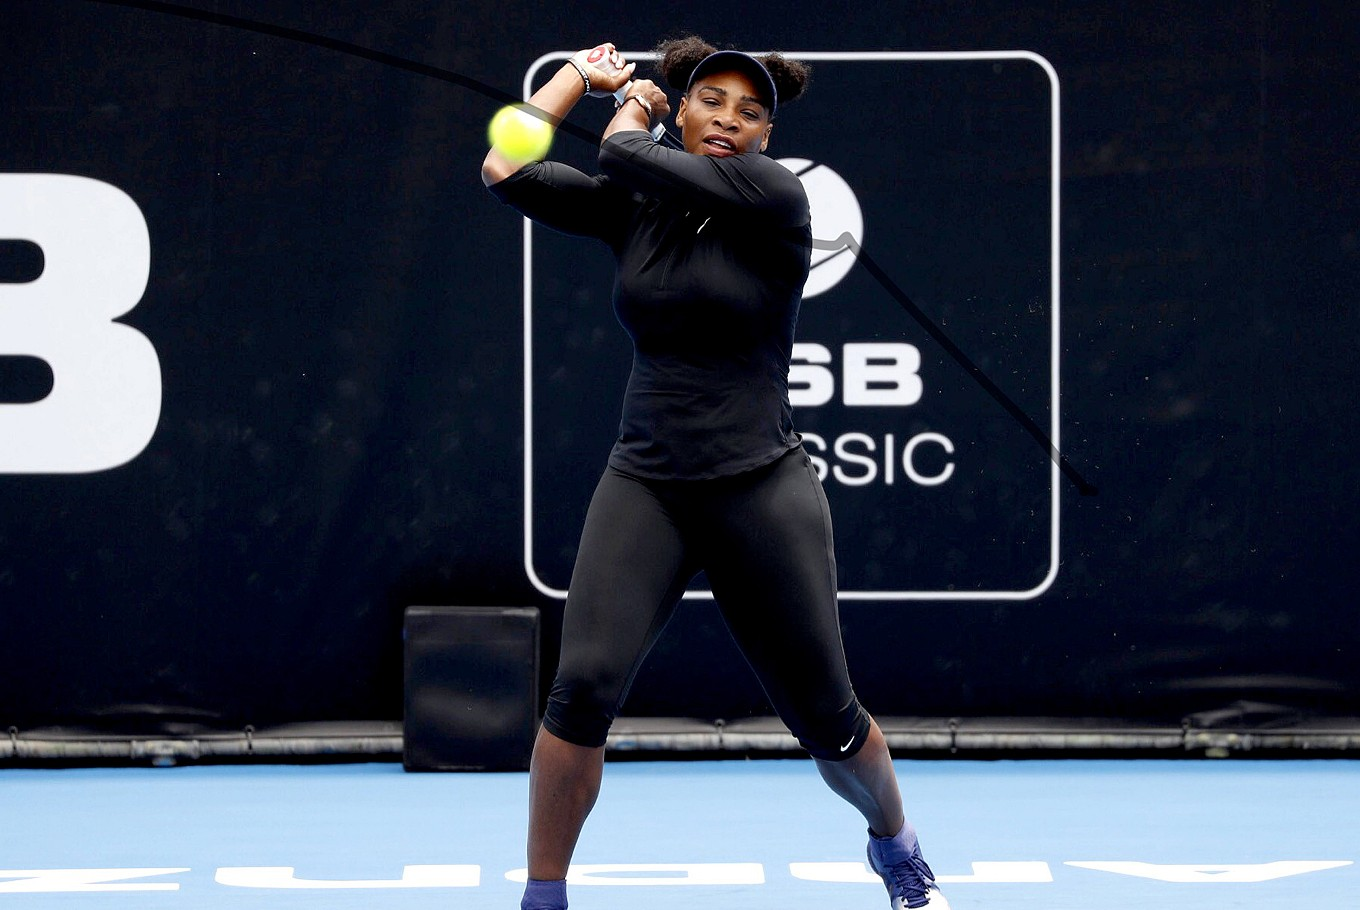 Serena wins at love again; says 'yes' to engagement in poem